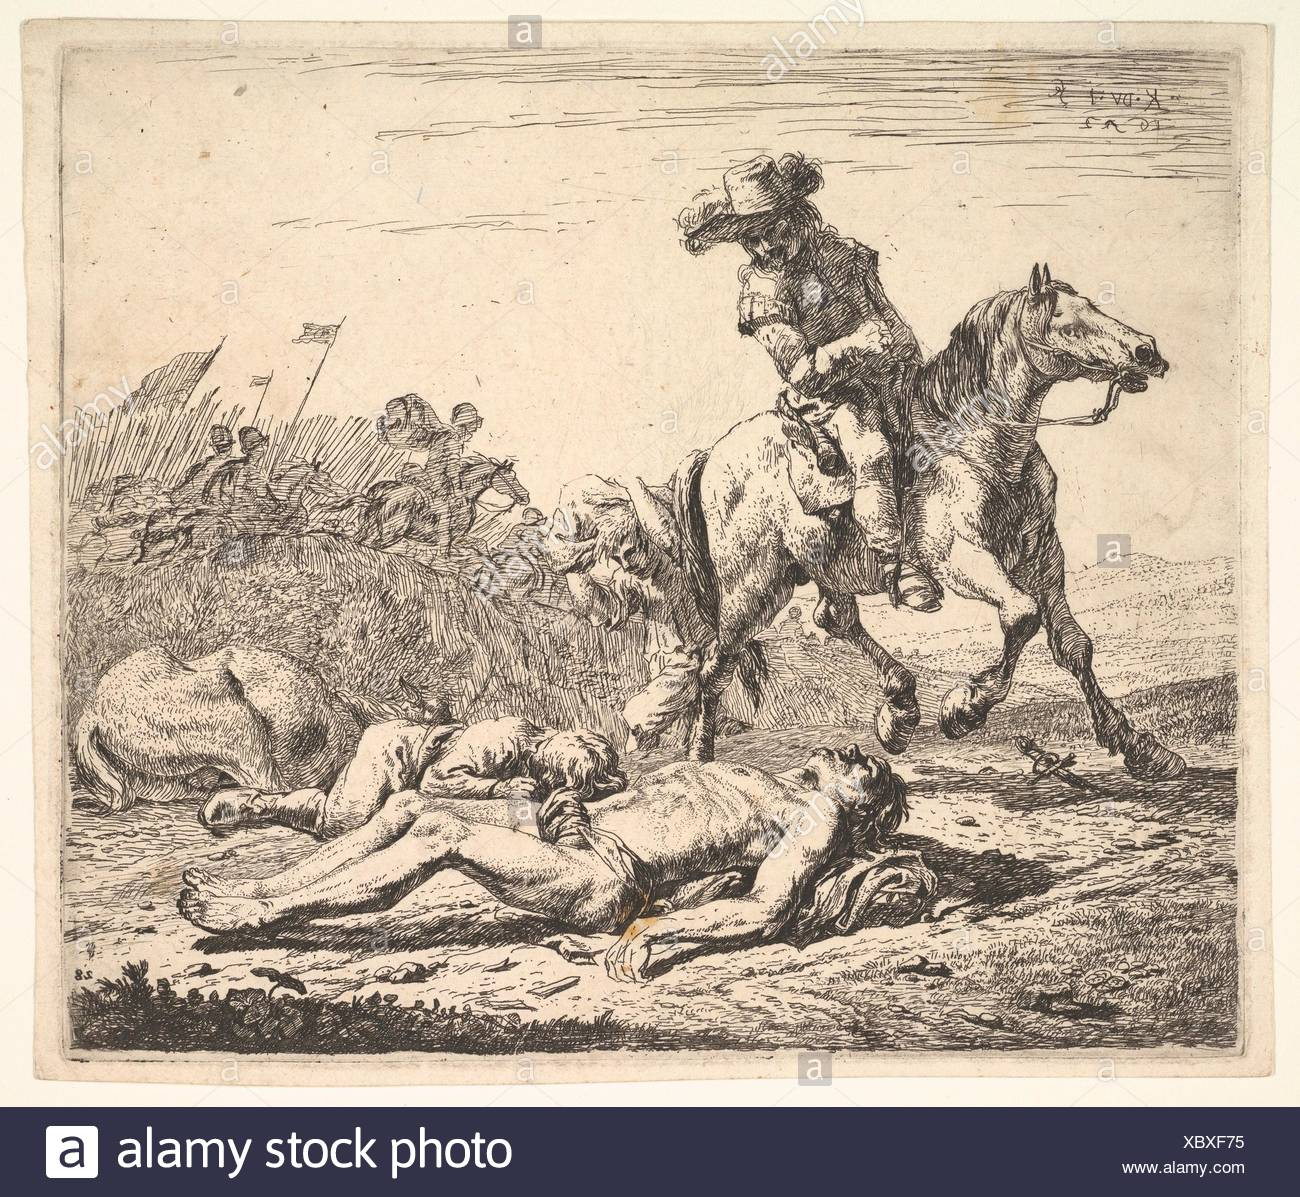 Battlefield With Horseman Looking Over His Left Shoulder Toward Stripped Corpse On The Ground A